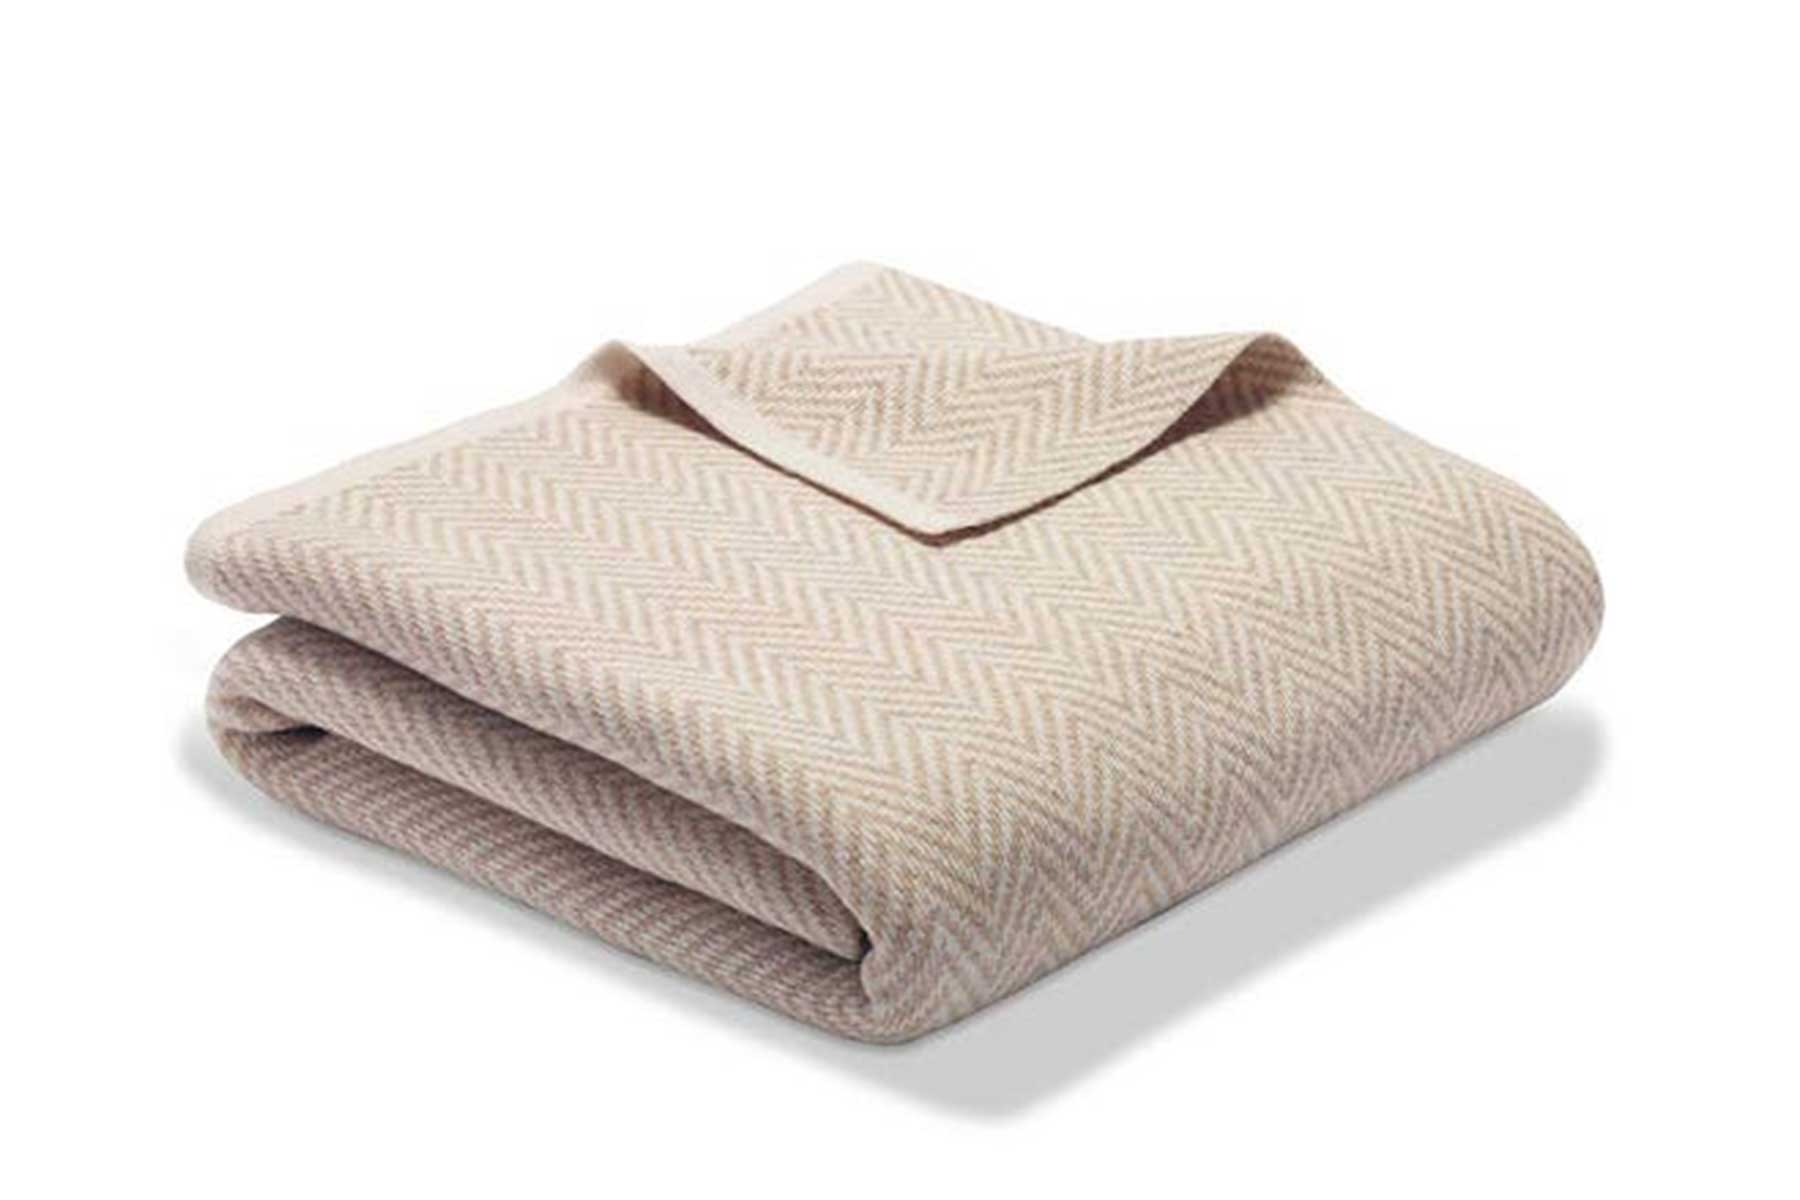 RiLEY Luxe Cashmere Throw